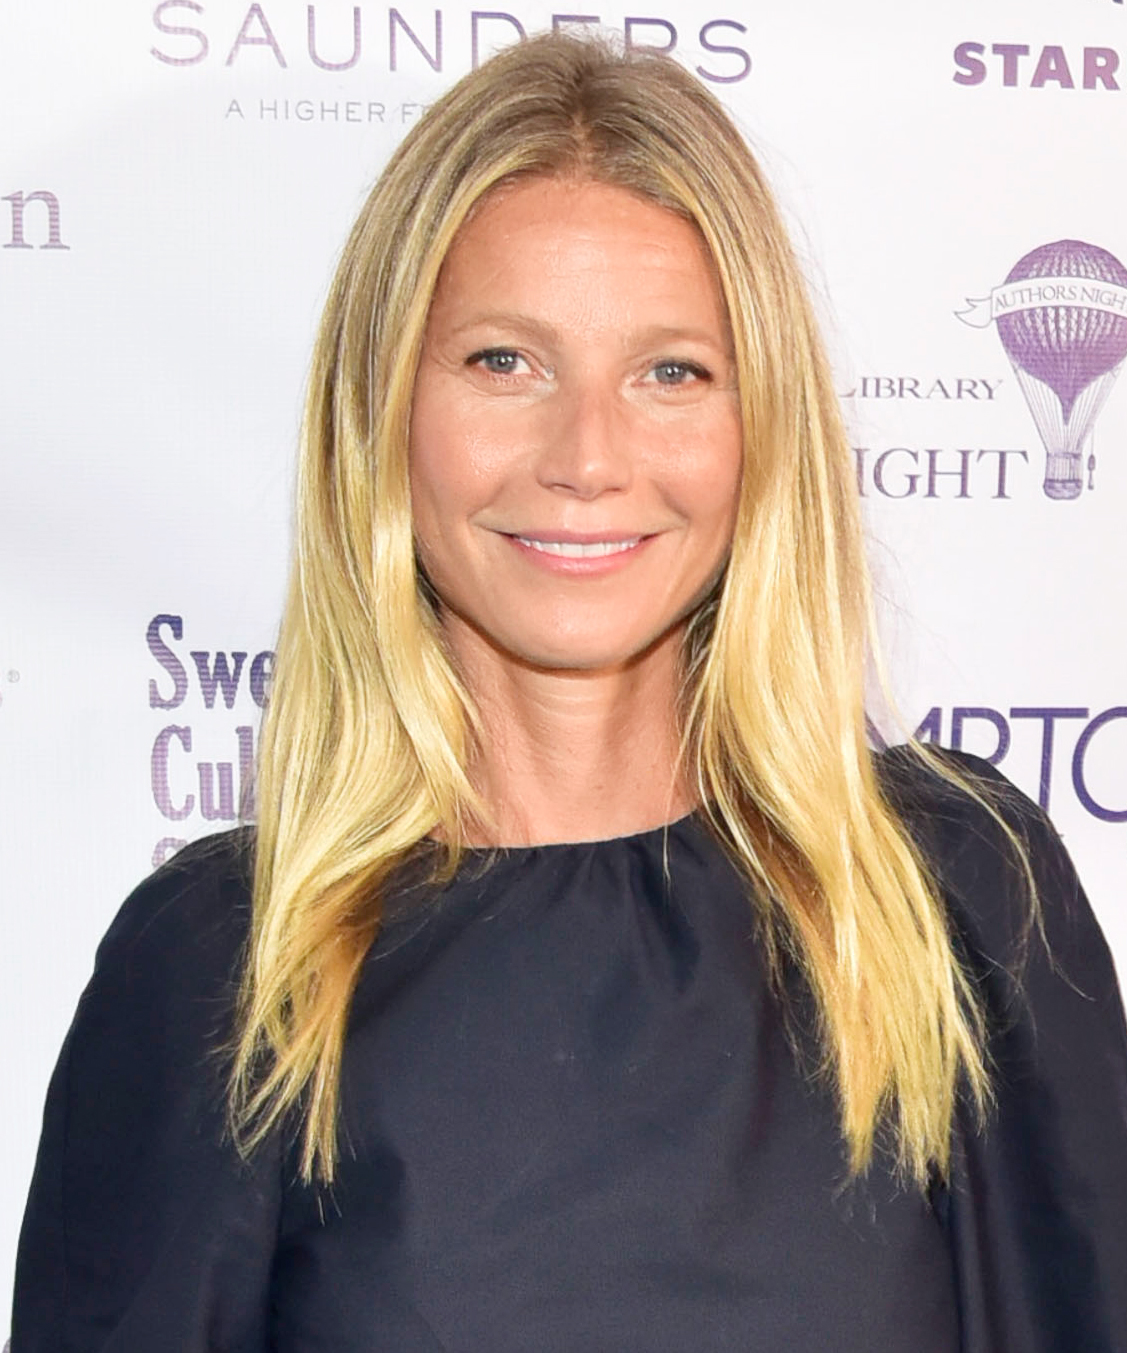 Gwyneth Paltrow's Wellness Philosophy, in 10 Quotes